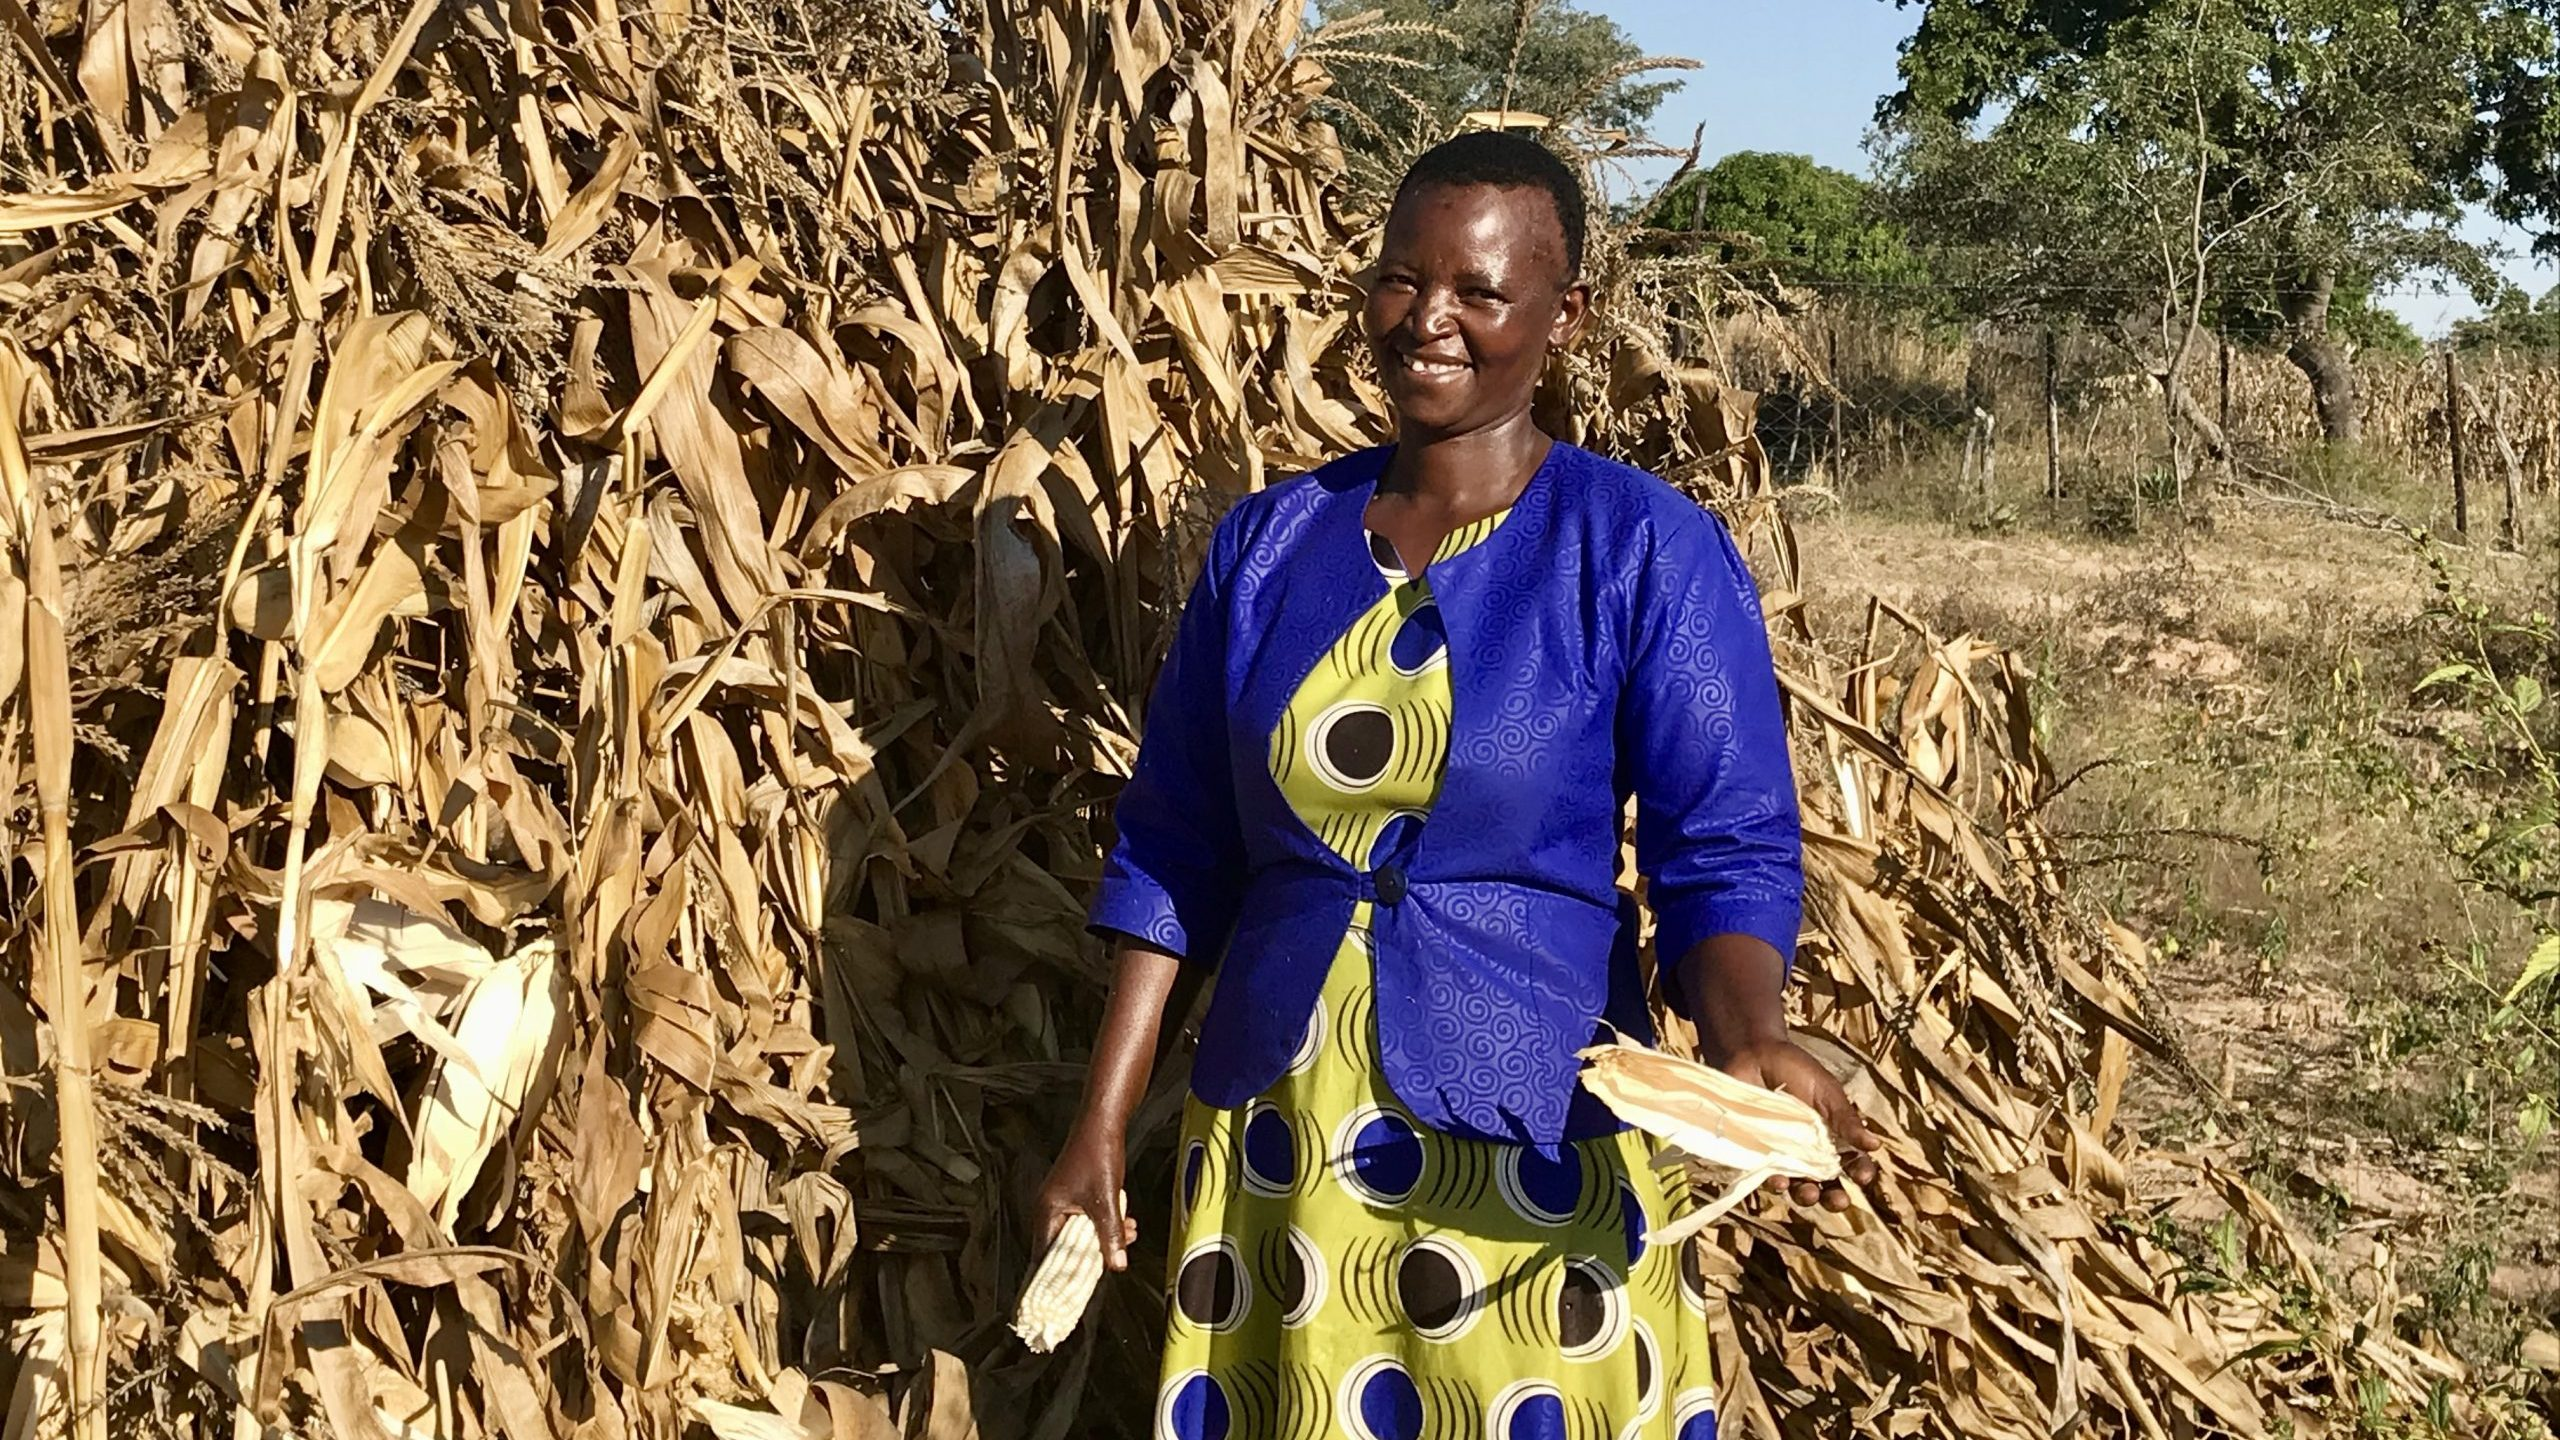 Smallholder farmer agricultural recovery after Idai